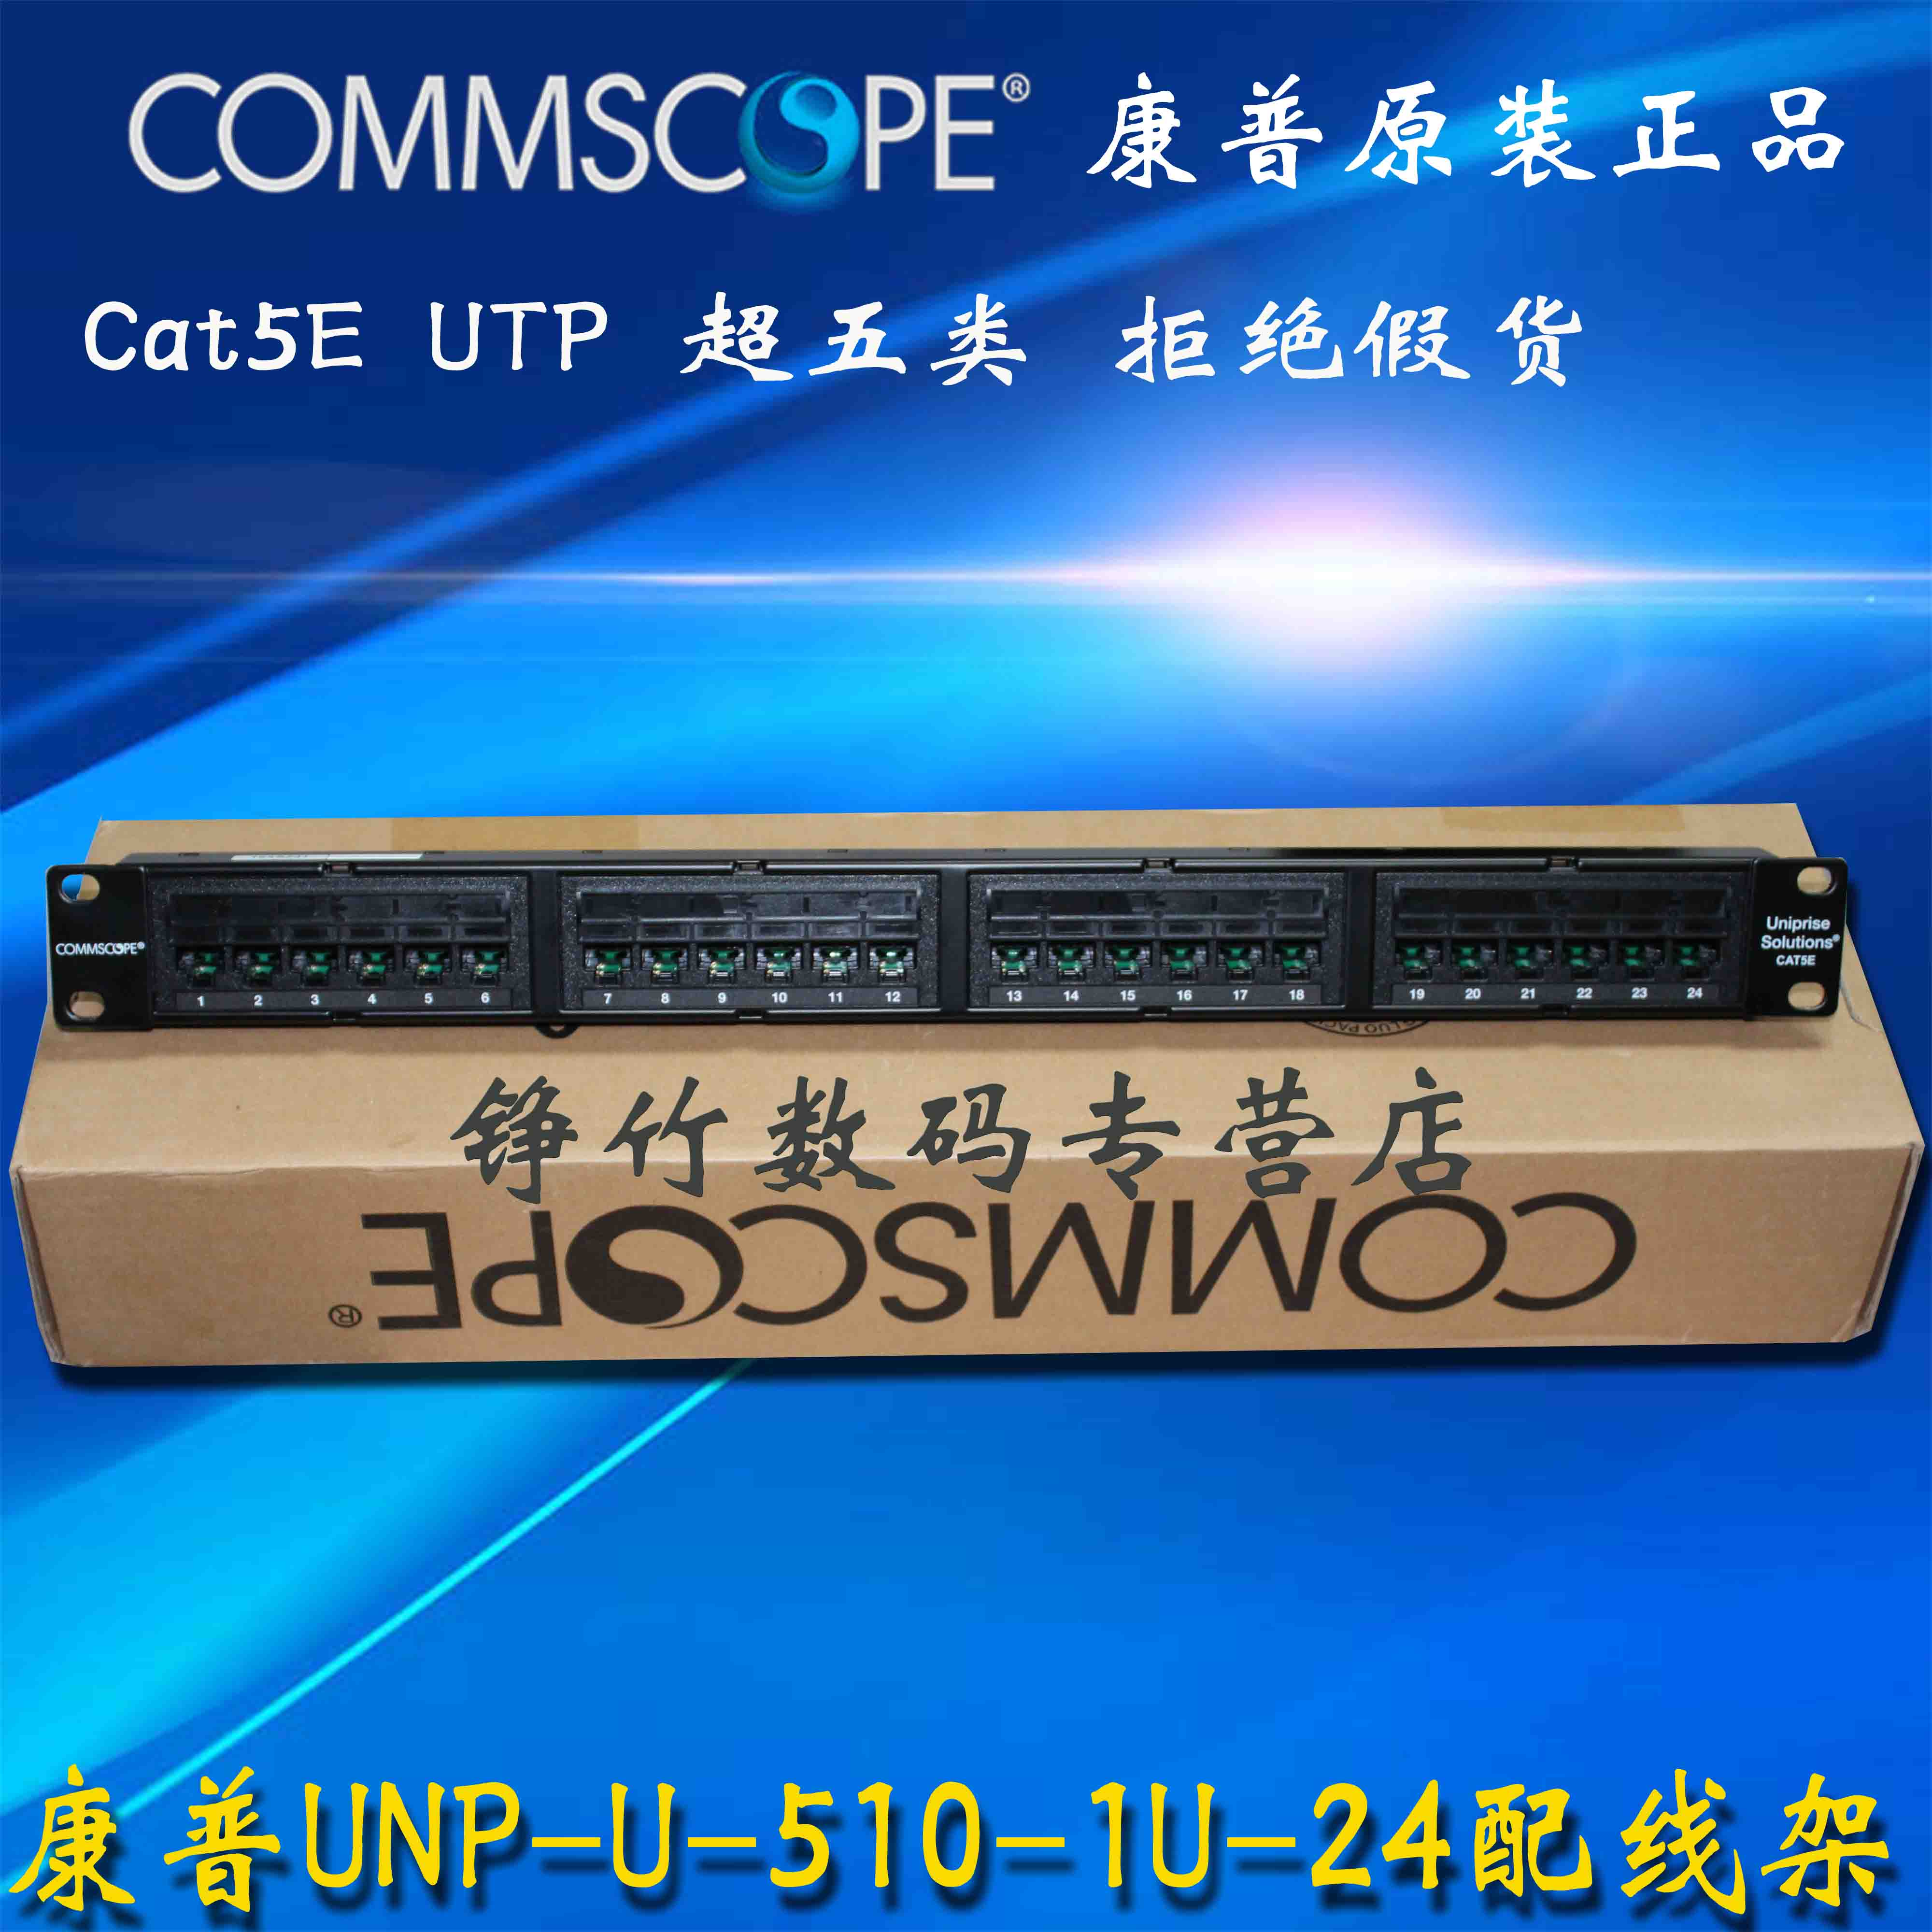 Compaq CPP-5E-DM-1U-24 Super Five Categories, 24 Ports Unshielded Distribution Frames, Super Five Categories, 24 Ports Network Distribution Frame Modular Distribution Frame Ring Replaces AMP 406330-1